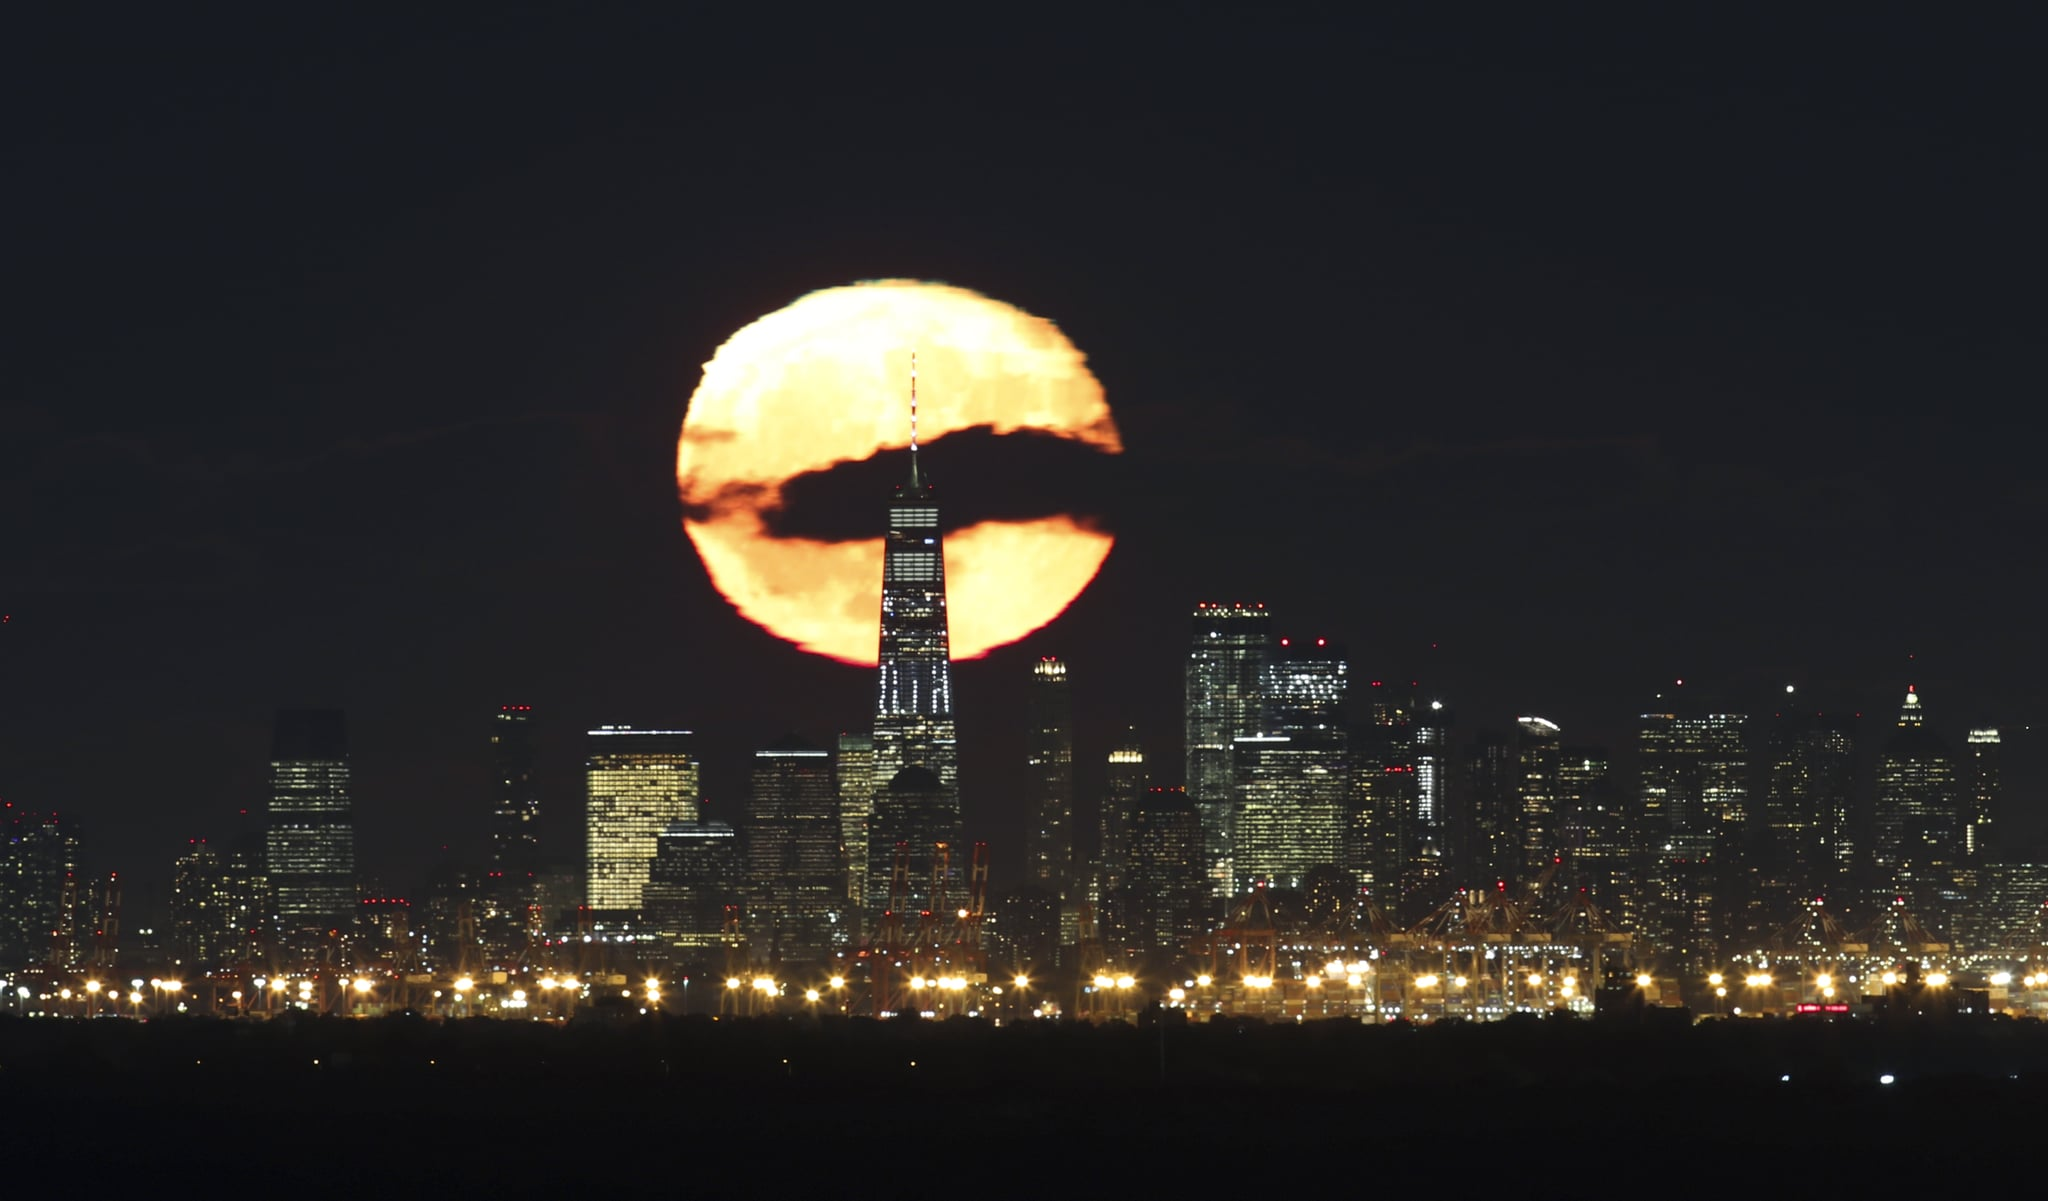 GREEN BROOK TOWNSHIP, NJ - OCTOBER 25: One day after the full Hunter's Moon, the moon rises behind lower Manhattan and One World Trade Centre in New York City on October 25, 2018, as seen from Green Brook Township, New Jersey. (Photo by Gary Hershorn/Getty Images)